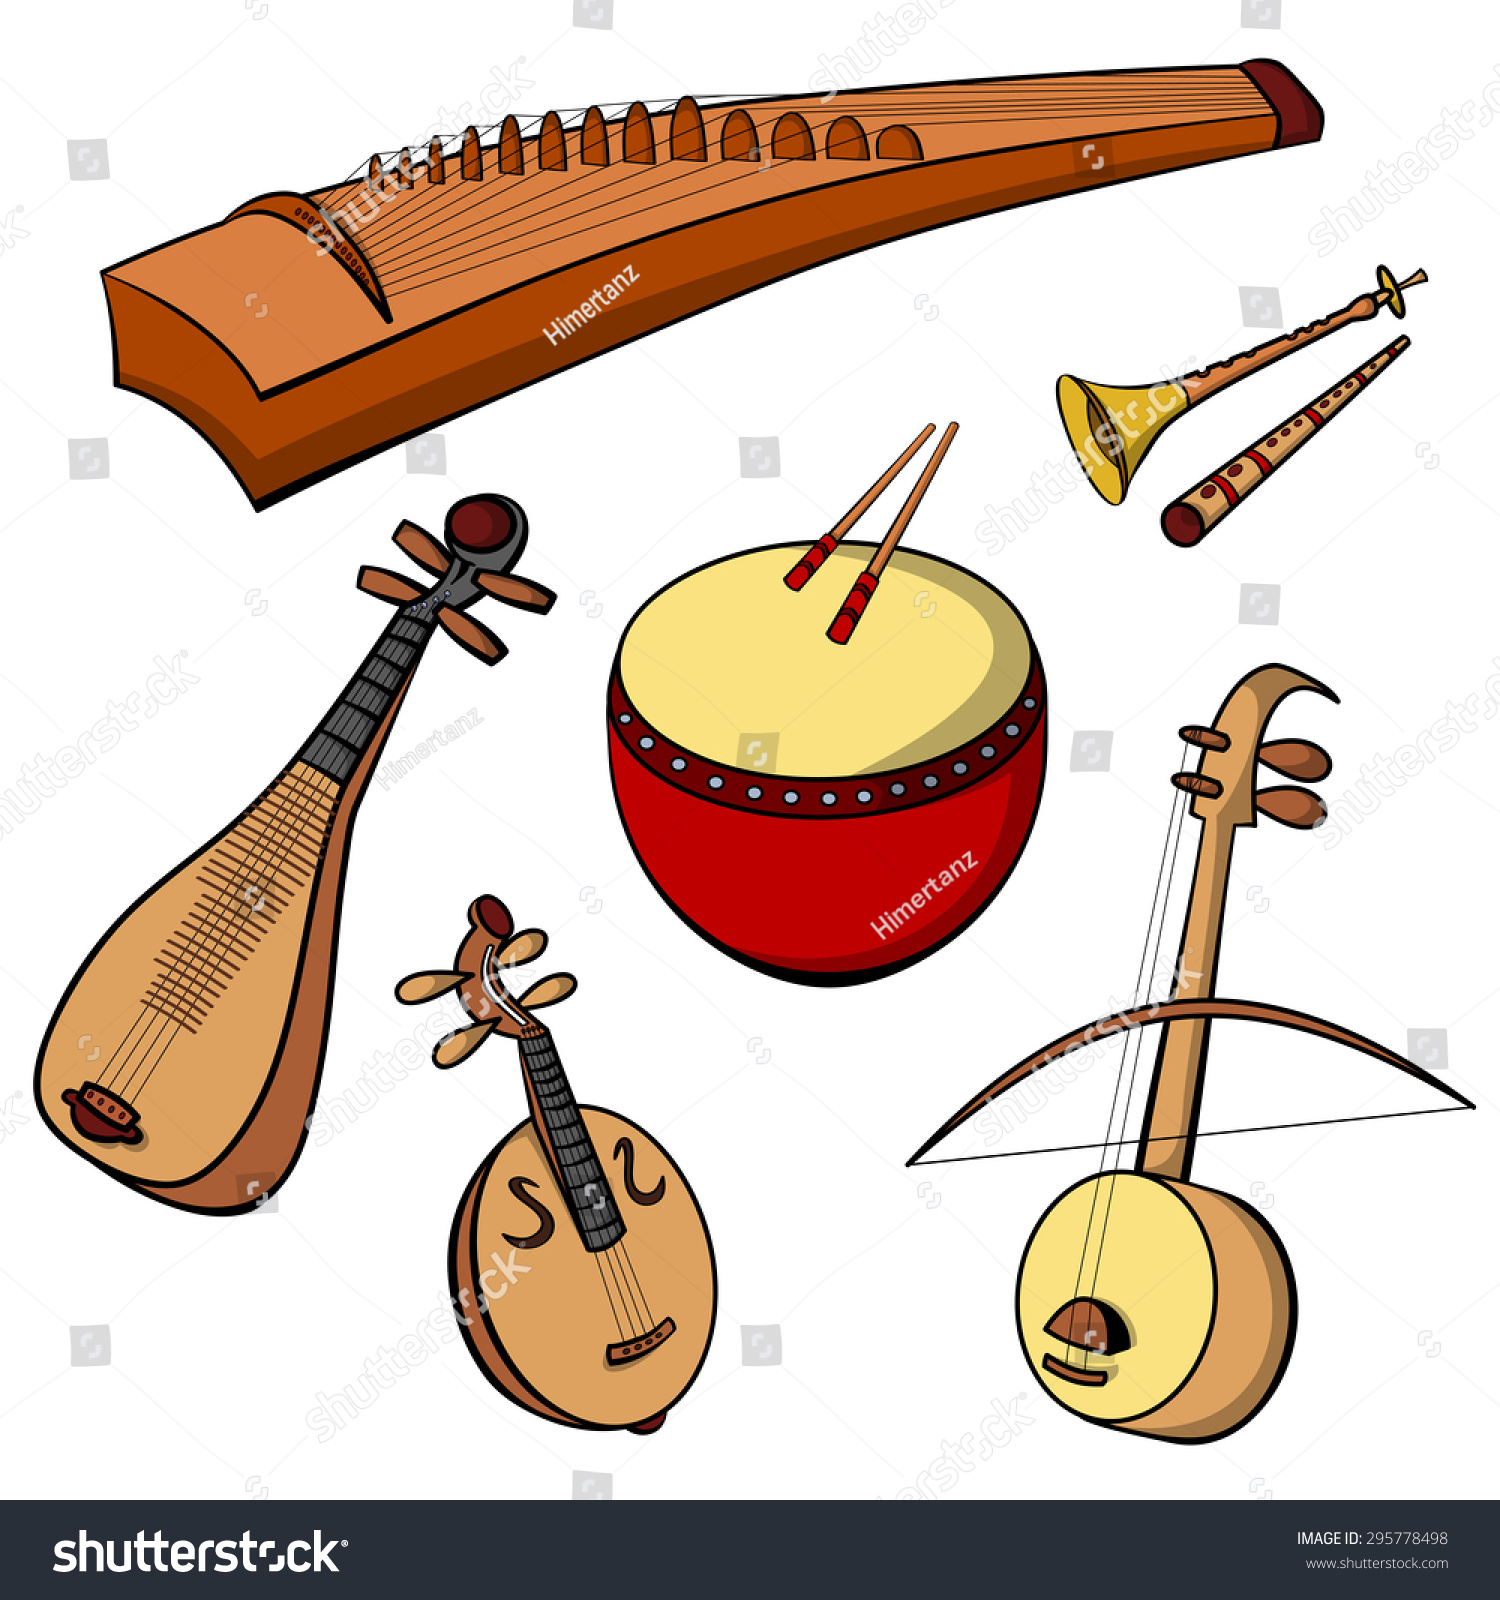 List of Chinese musical instruments  Wikipedia